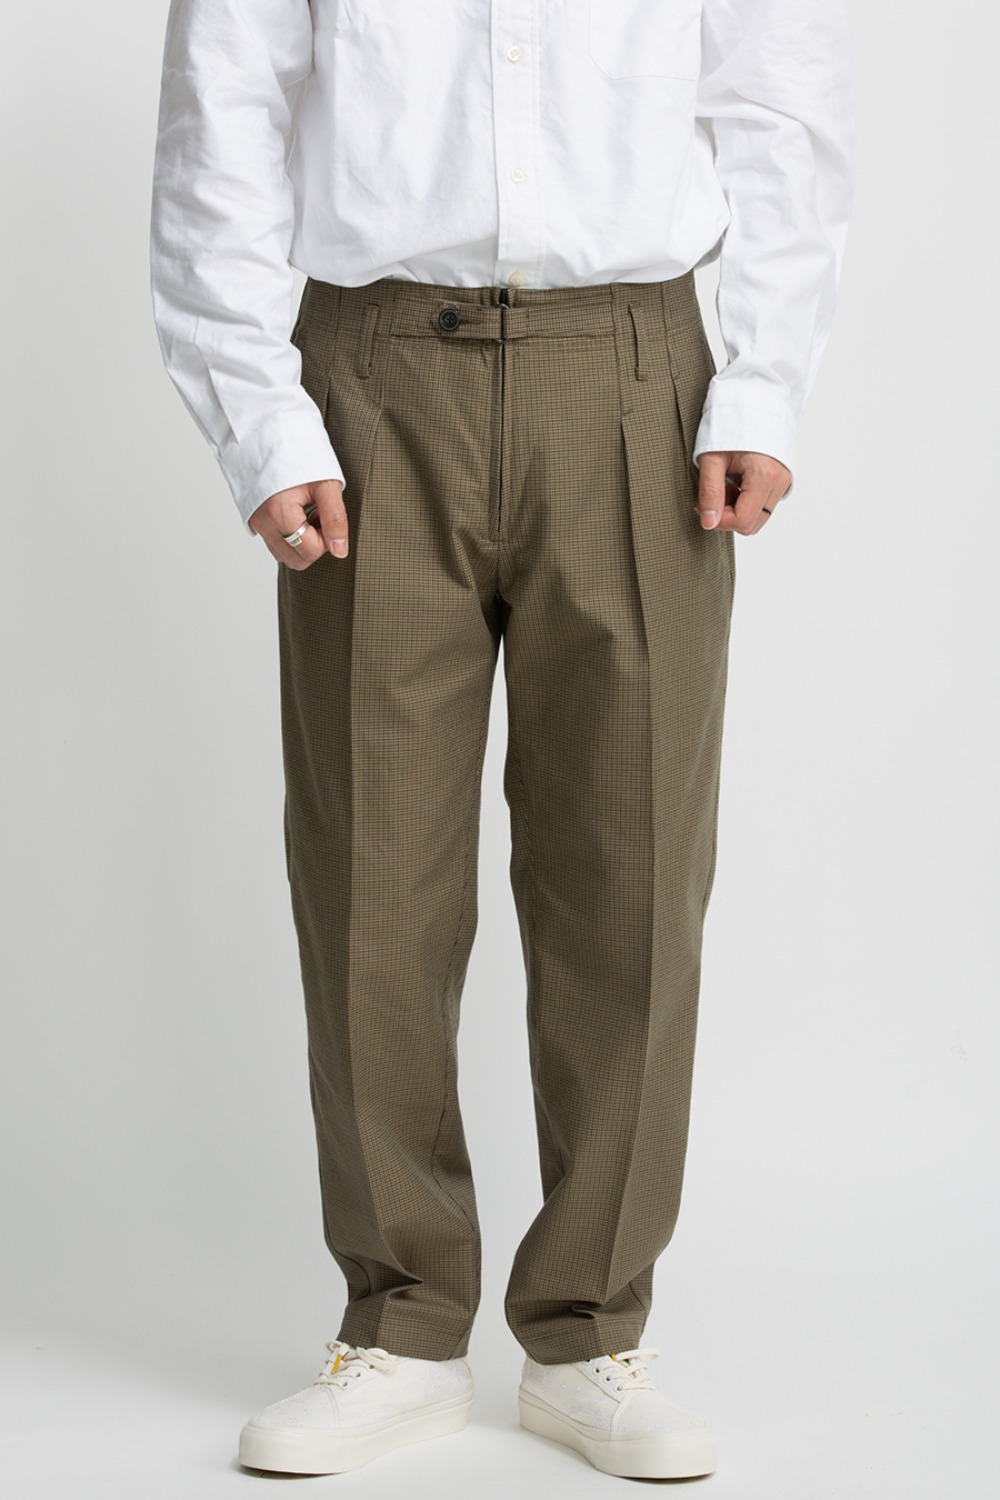 EXPLORER PANTS / BEIGE GUNCLUB CHECK